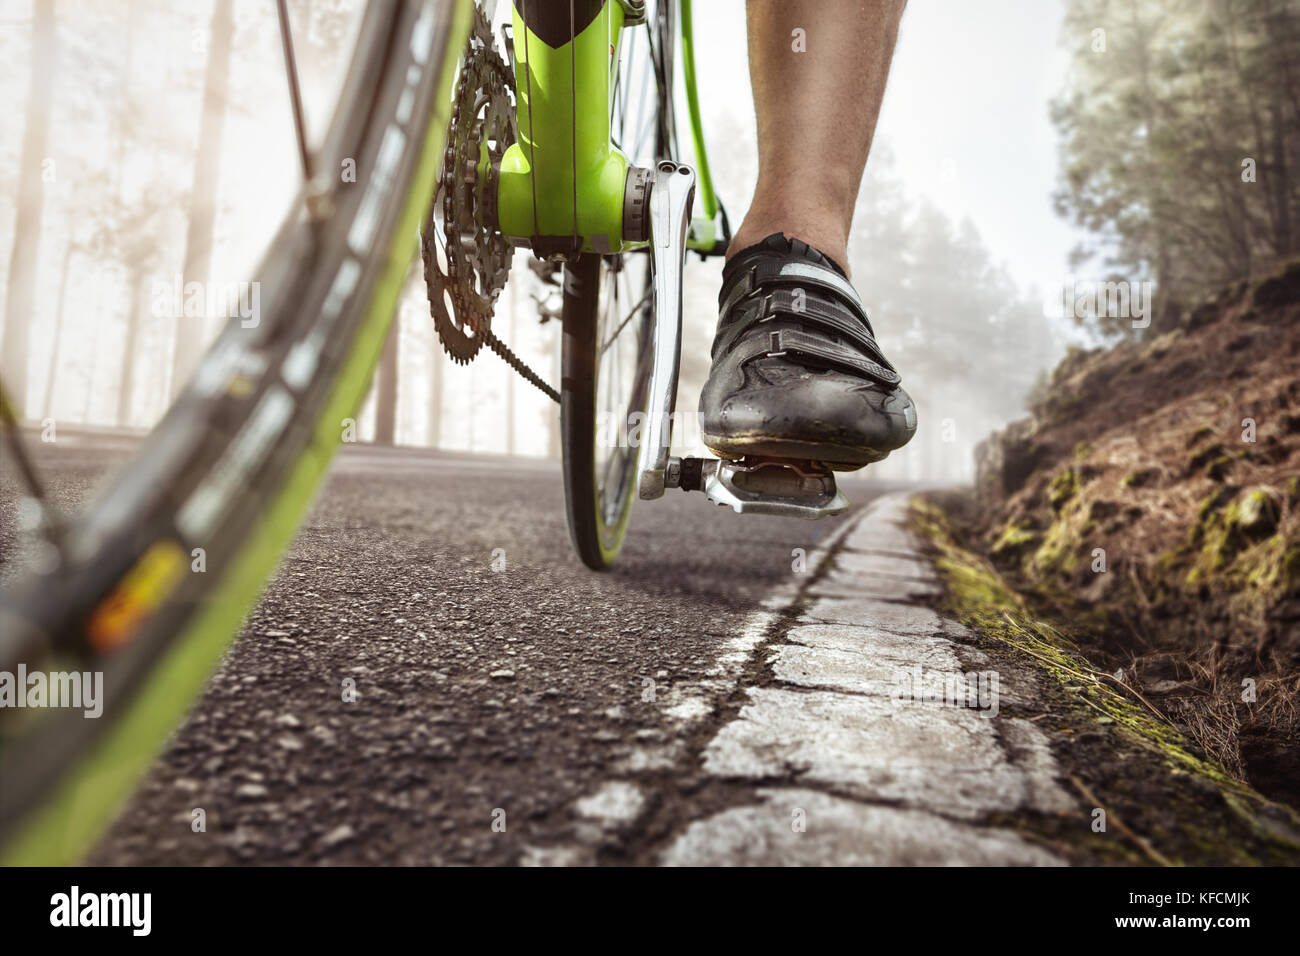 Cycling on a foggy forest road - Stock Image